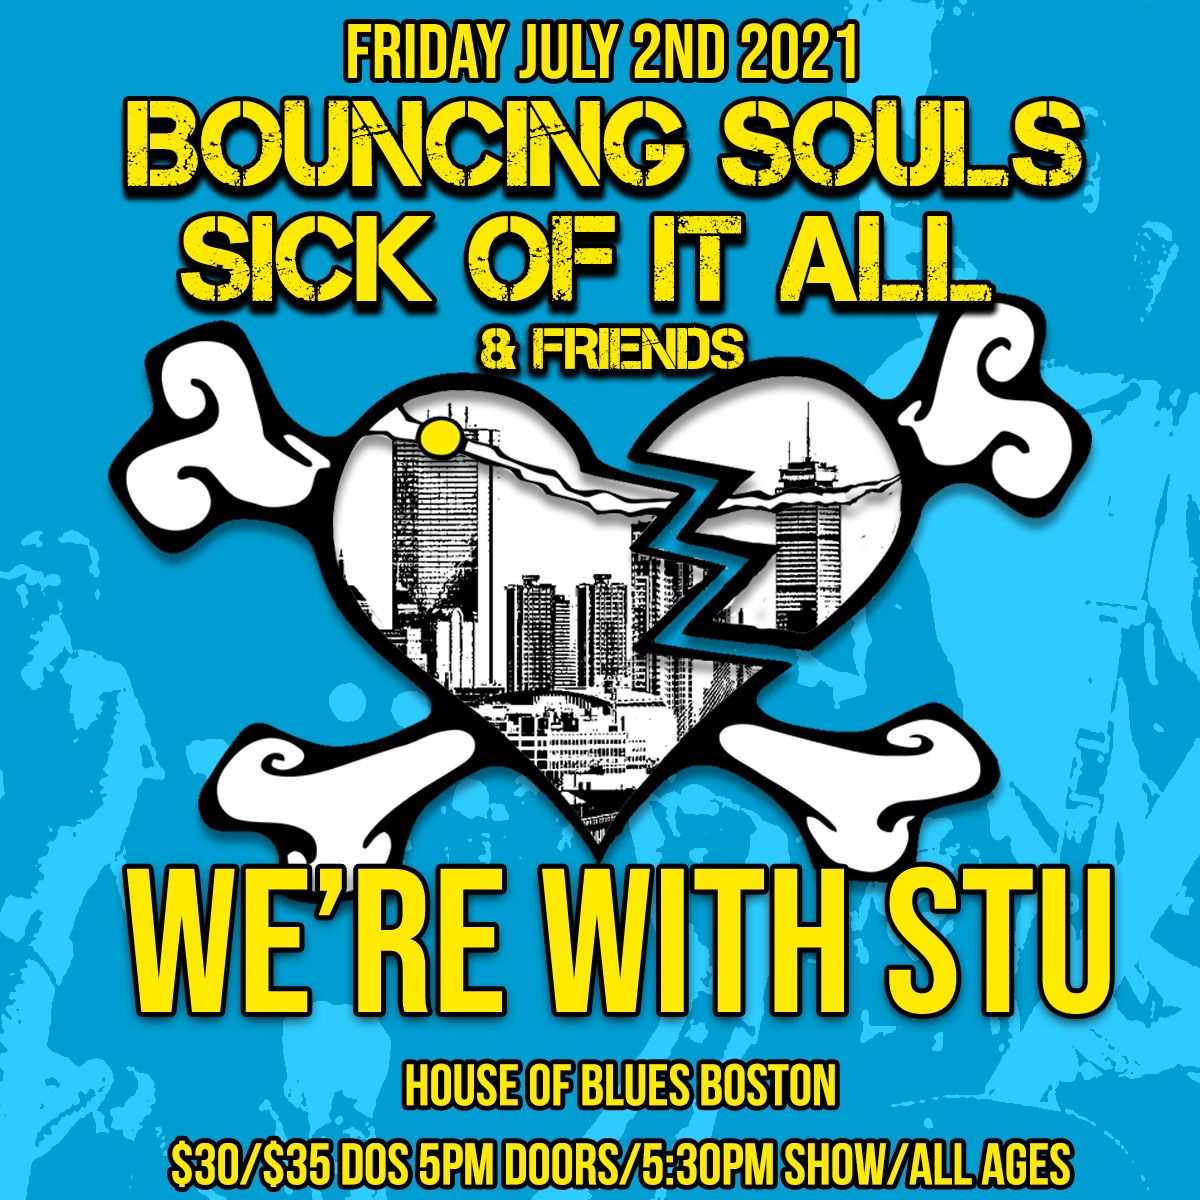 We're With Stu!!